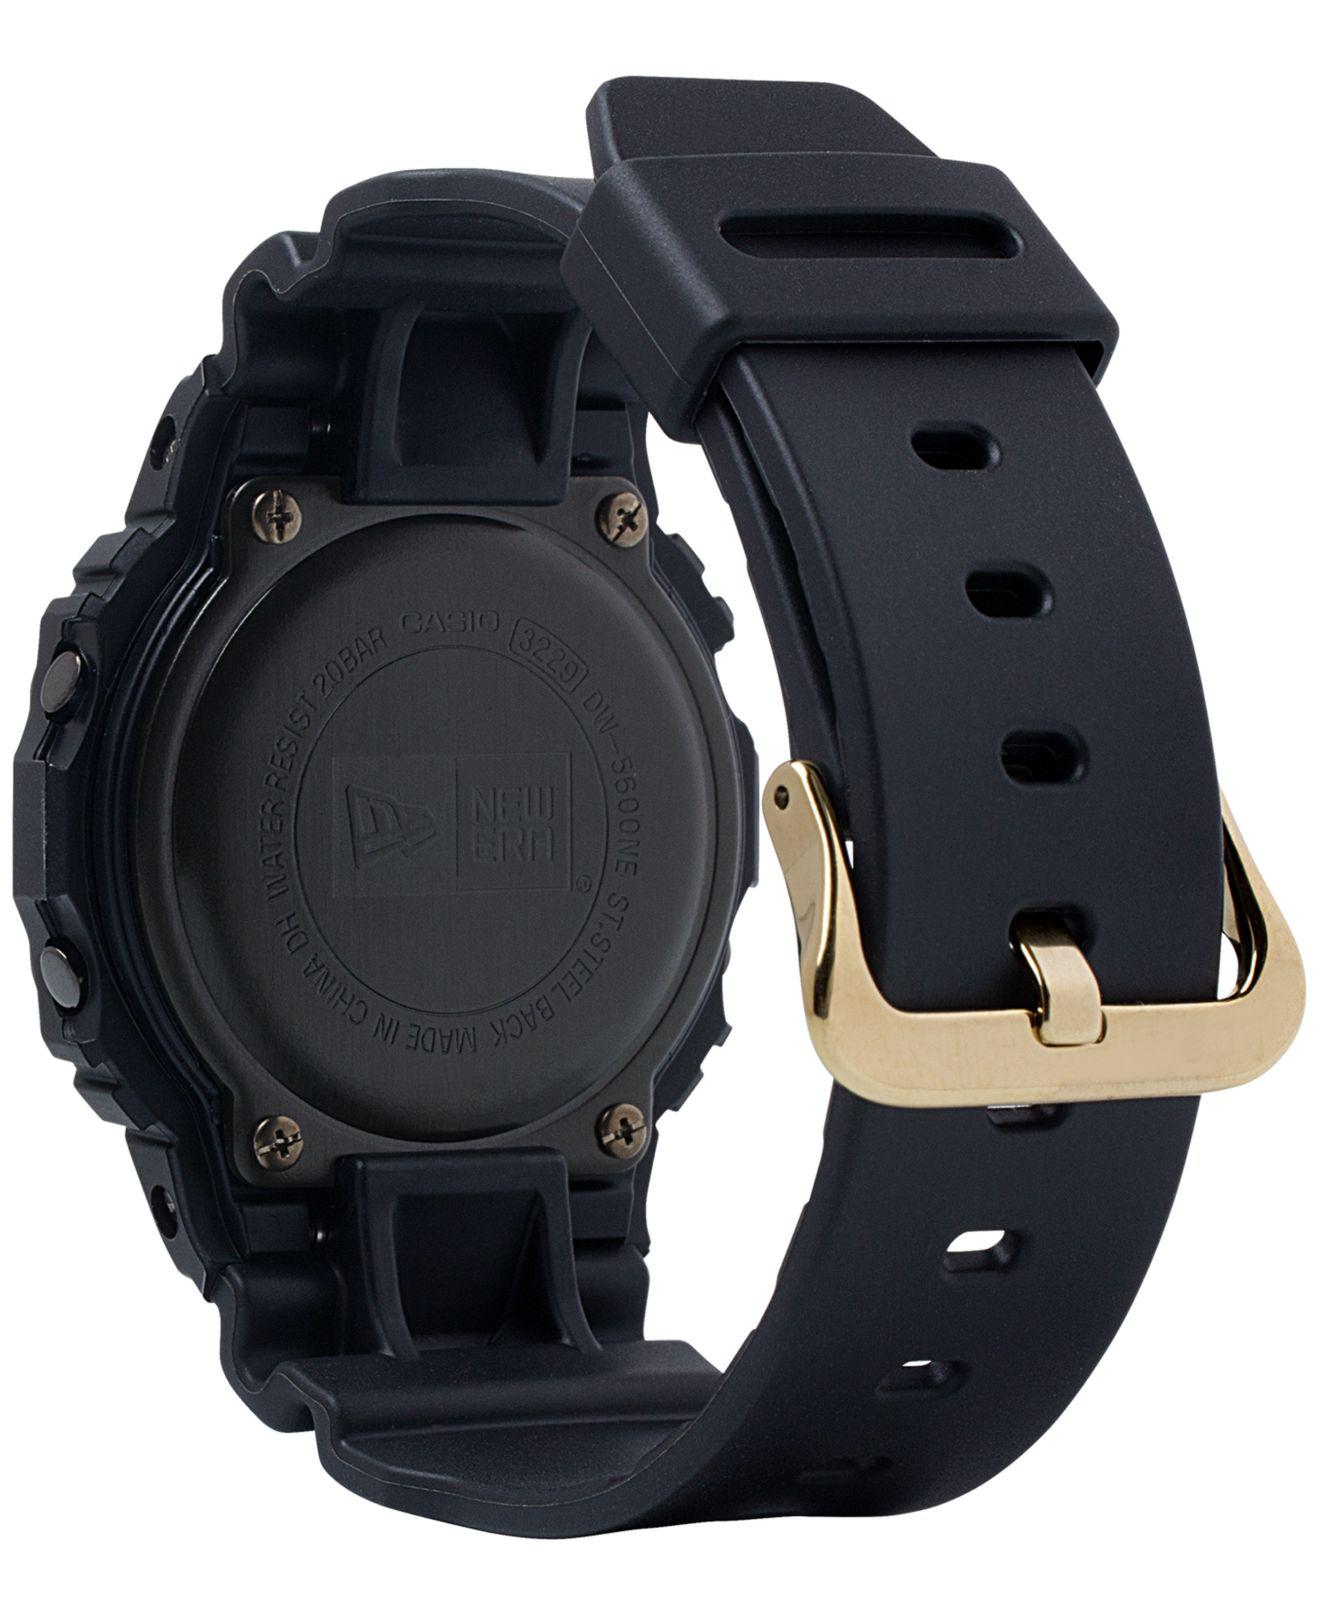 569f1c316 Lyst - G-Shock Digital New Era Black Resin Strap Watch 42.8mm - Limited  Edition in Black for Men